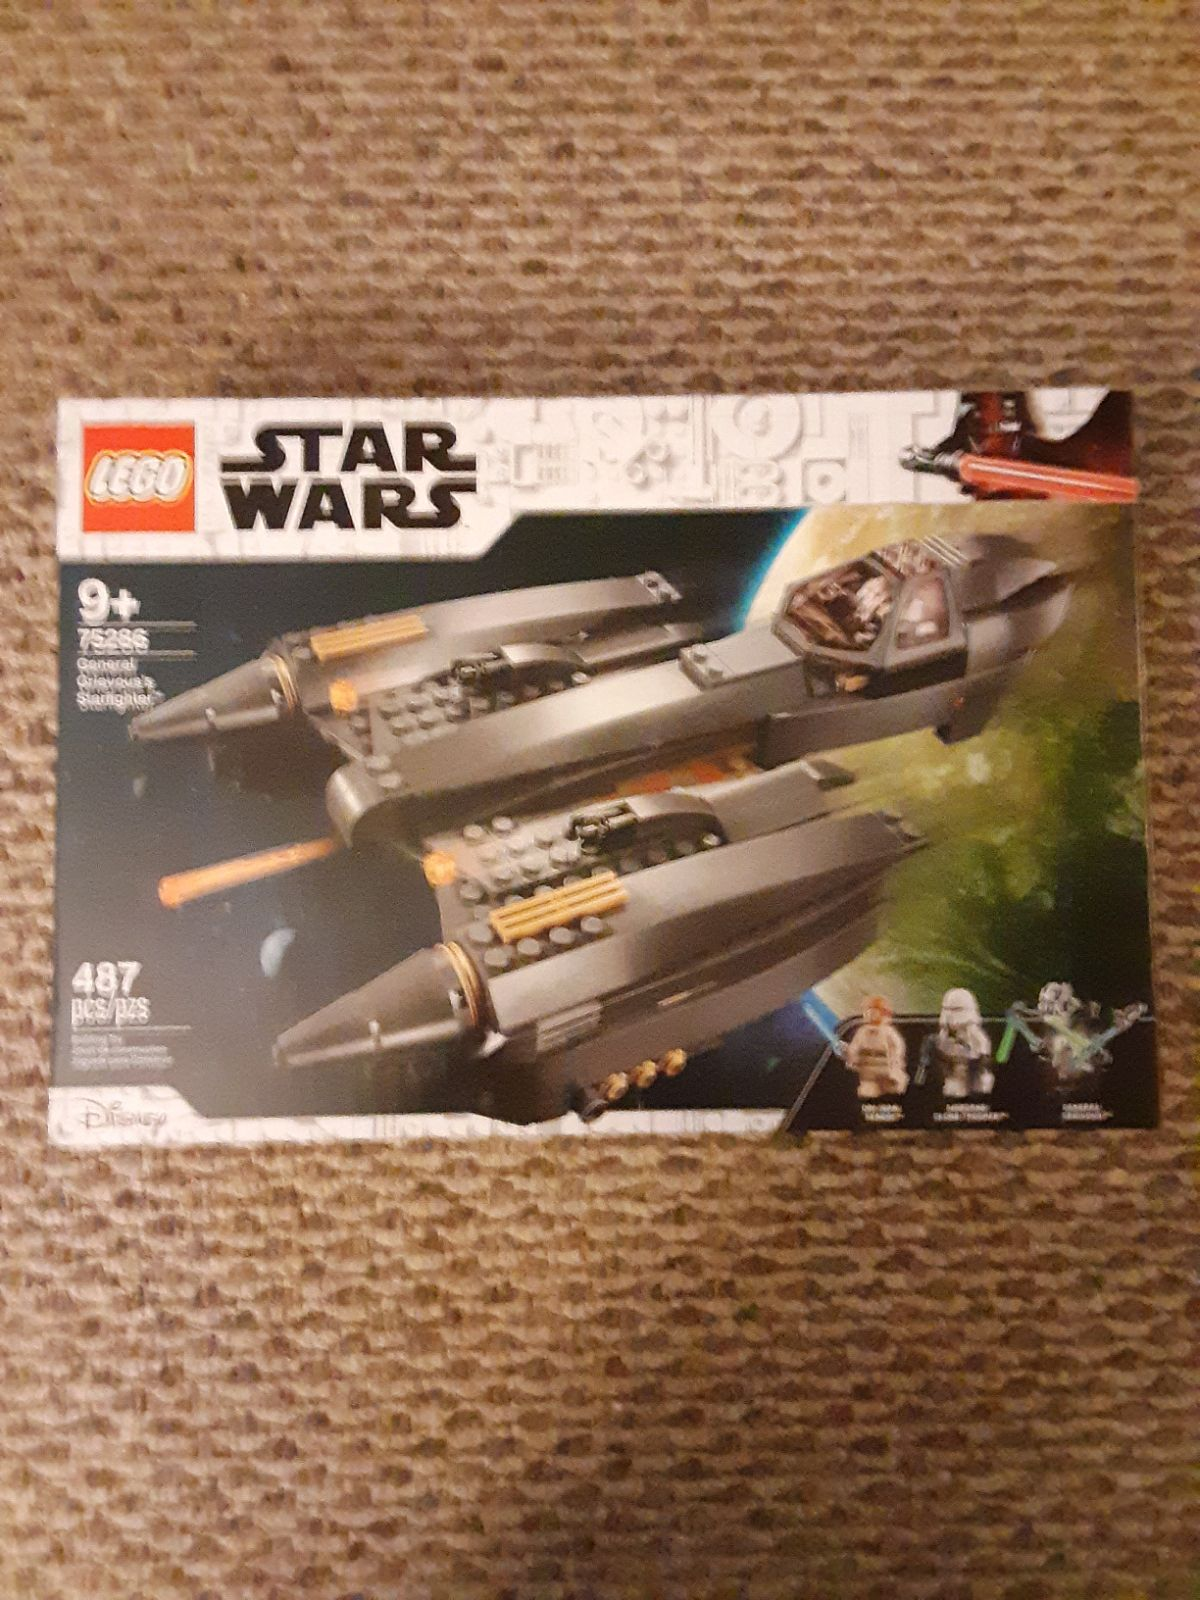 Lego Star Wars Grievous's Starfighter